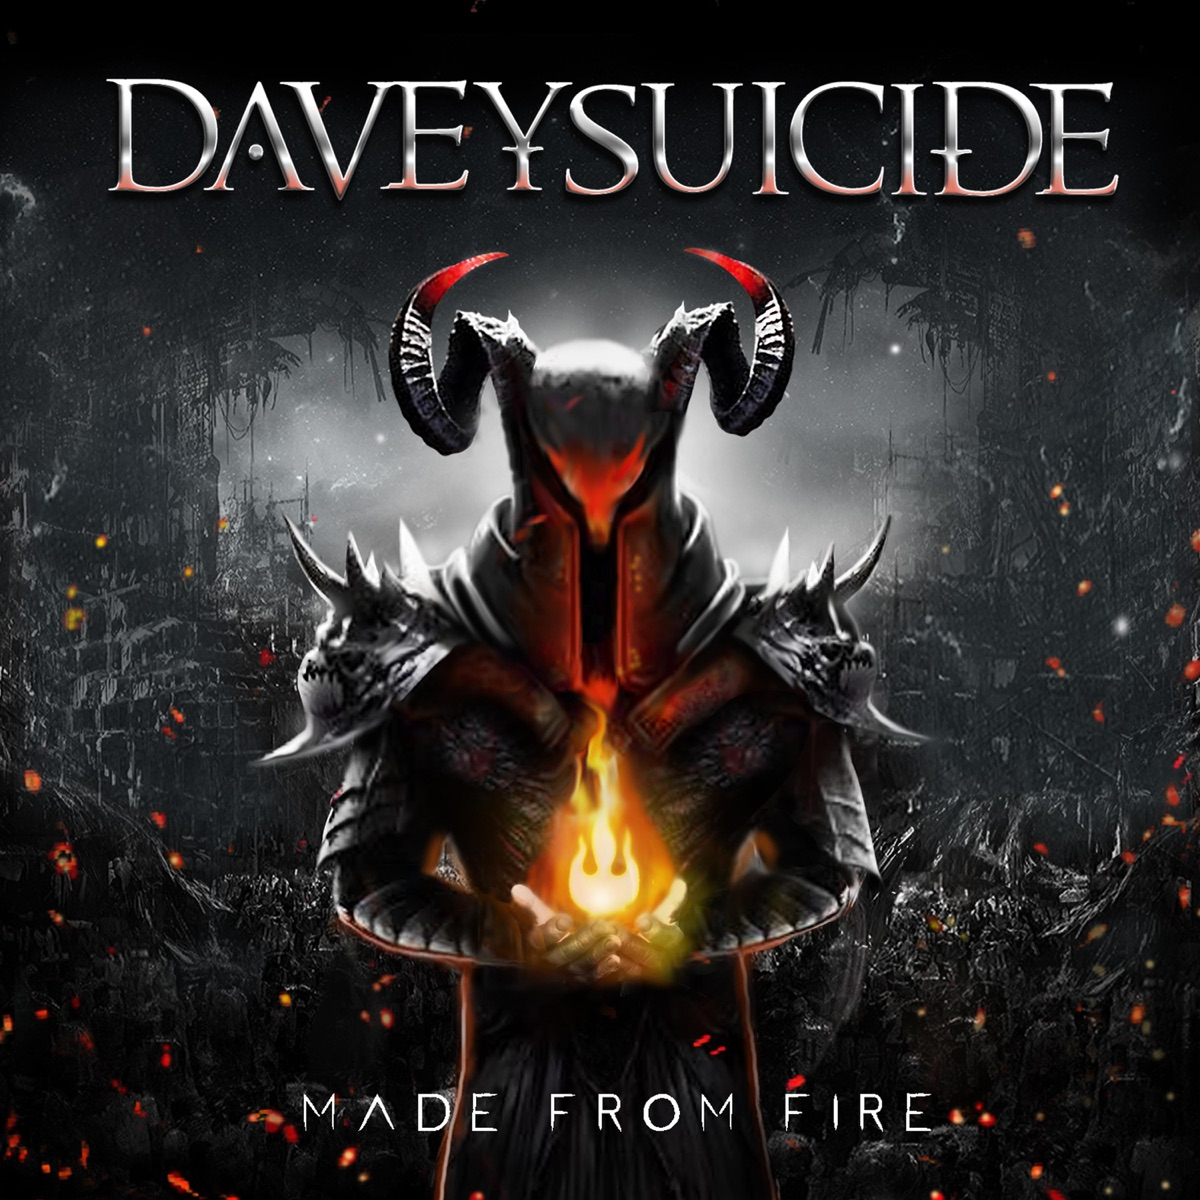 Made from Fire Davey Suicide CD cover